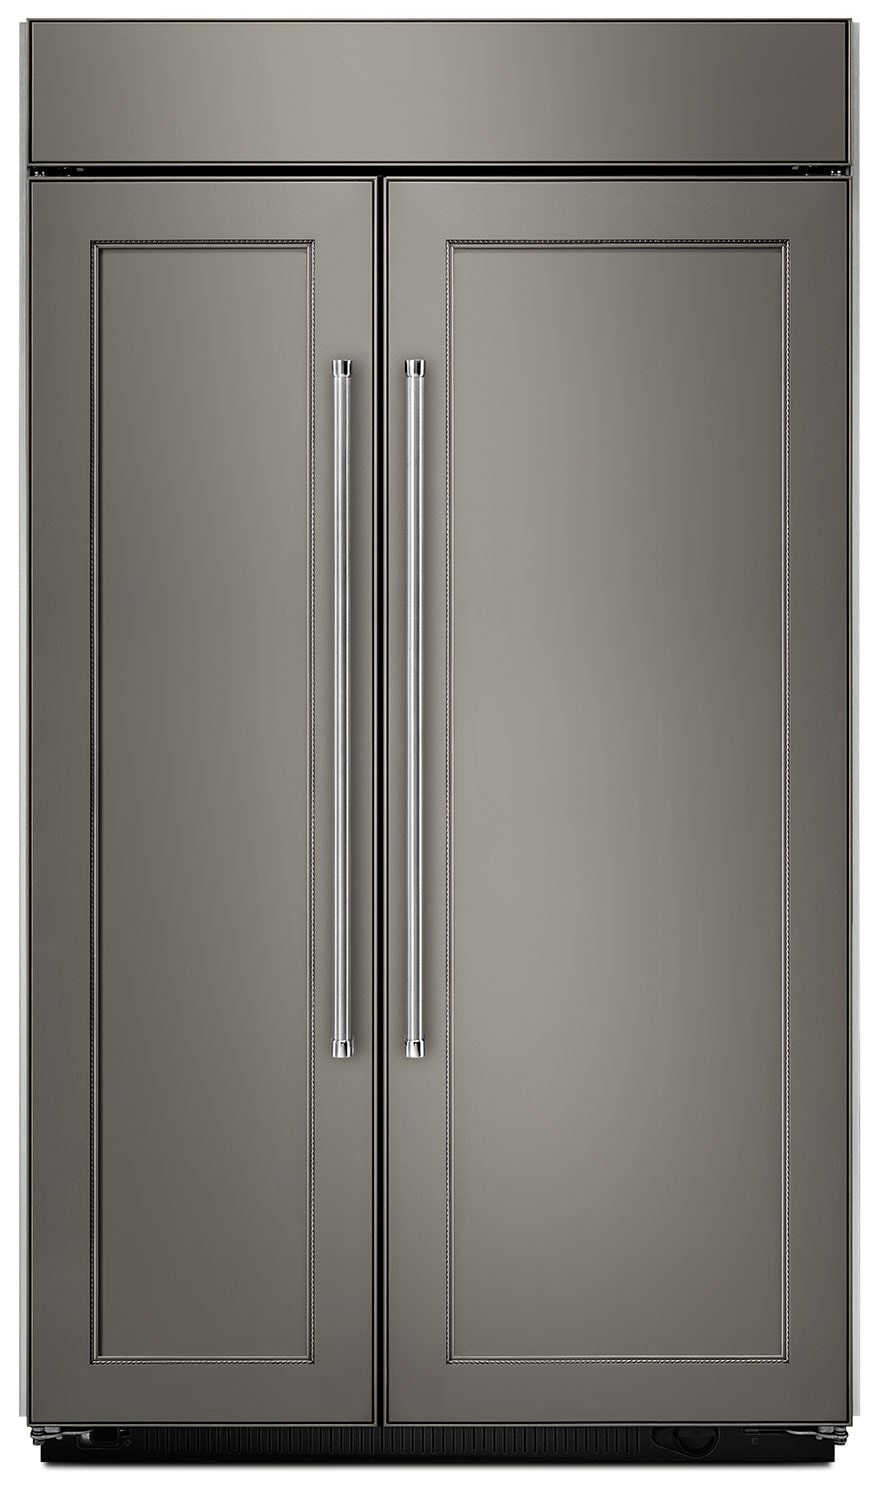 Refrigerators and Freezers - KitchenAid 30.0 Cu. Ft Built-In Side-by-Side Refrigerator – Panel Ready KBSN608EPA